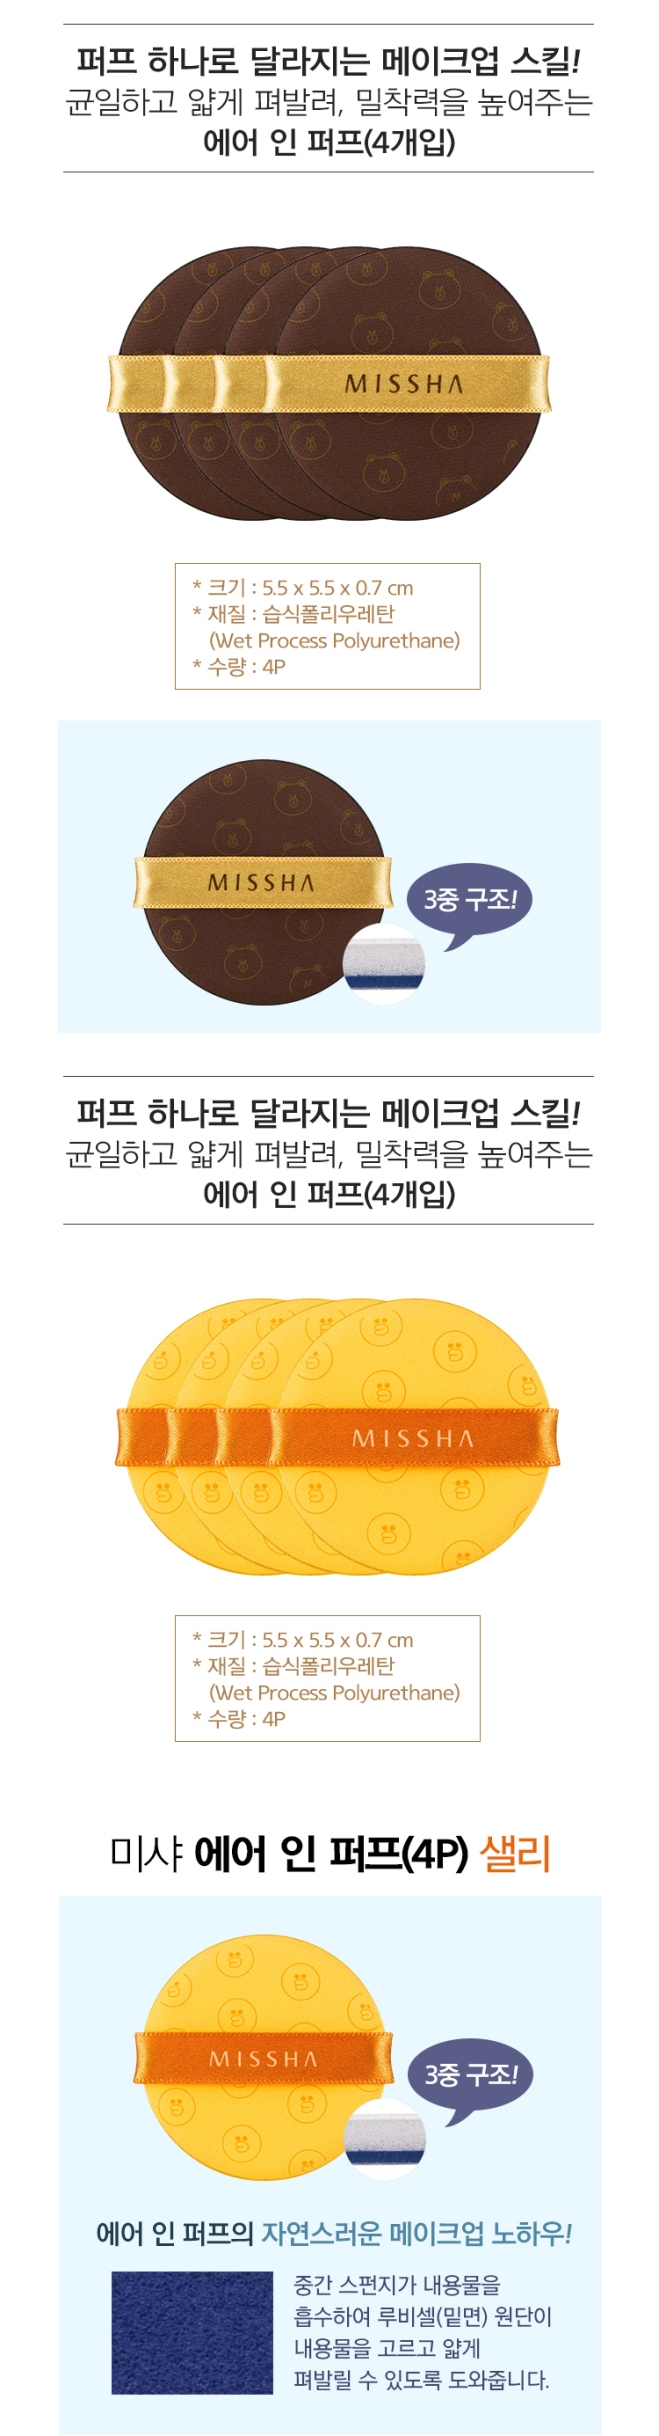 Missha x Line Friends Air in Puff (4pc)